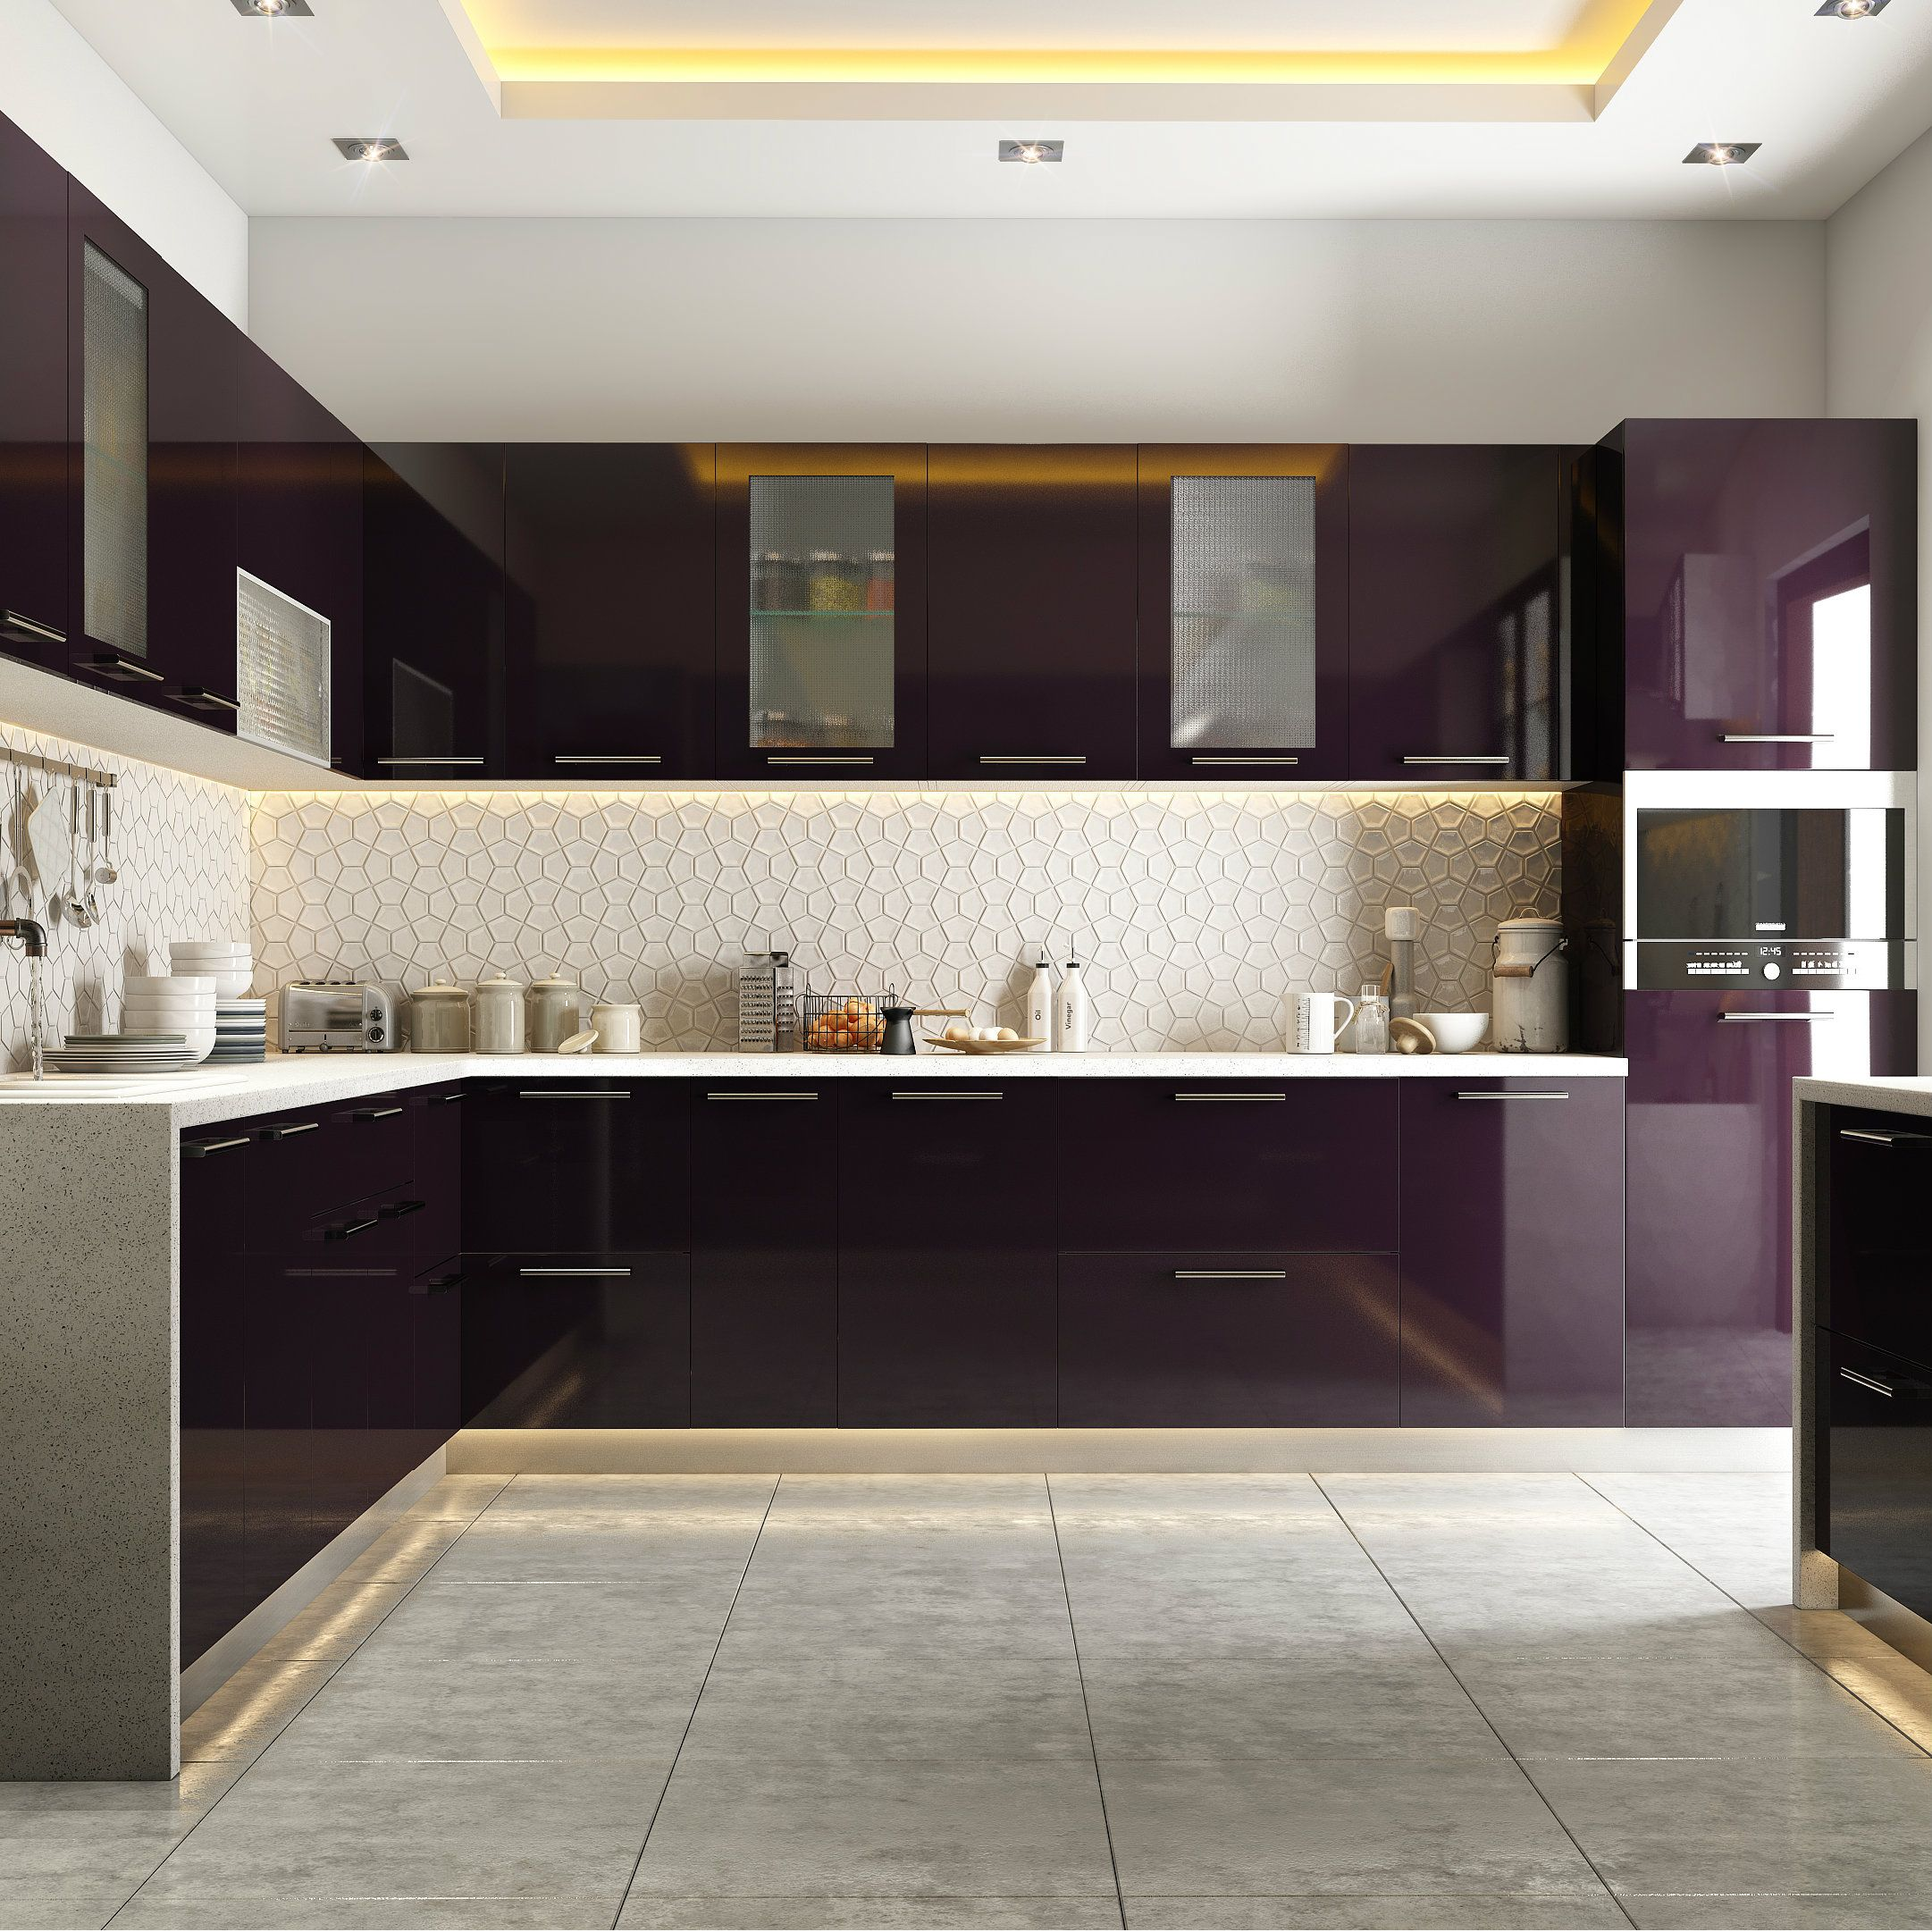 Long Kitchen Design Pictures Modular Kitchen Styled In Burgundy Hues Modular Kitchens Design